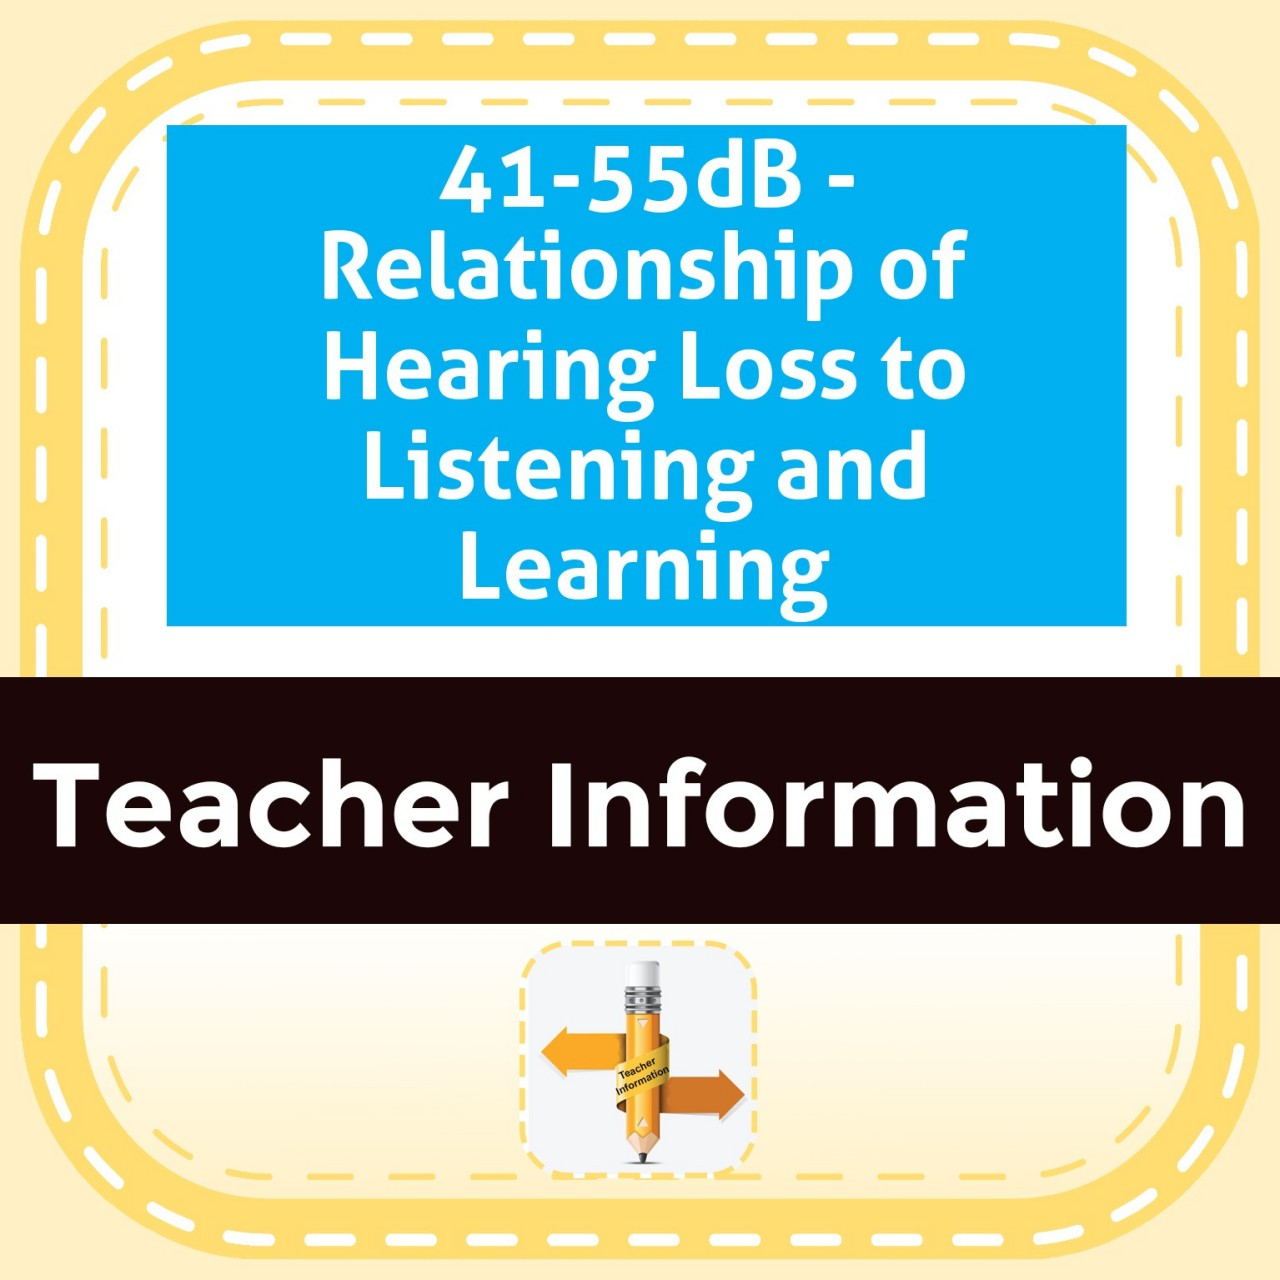 43-55dB - Relationship of Hearing Loss to Listening and Learning